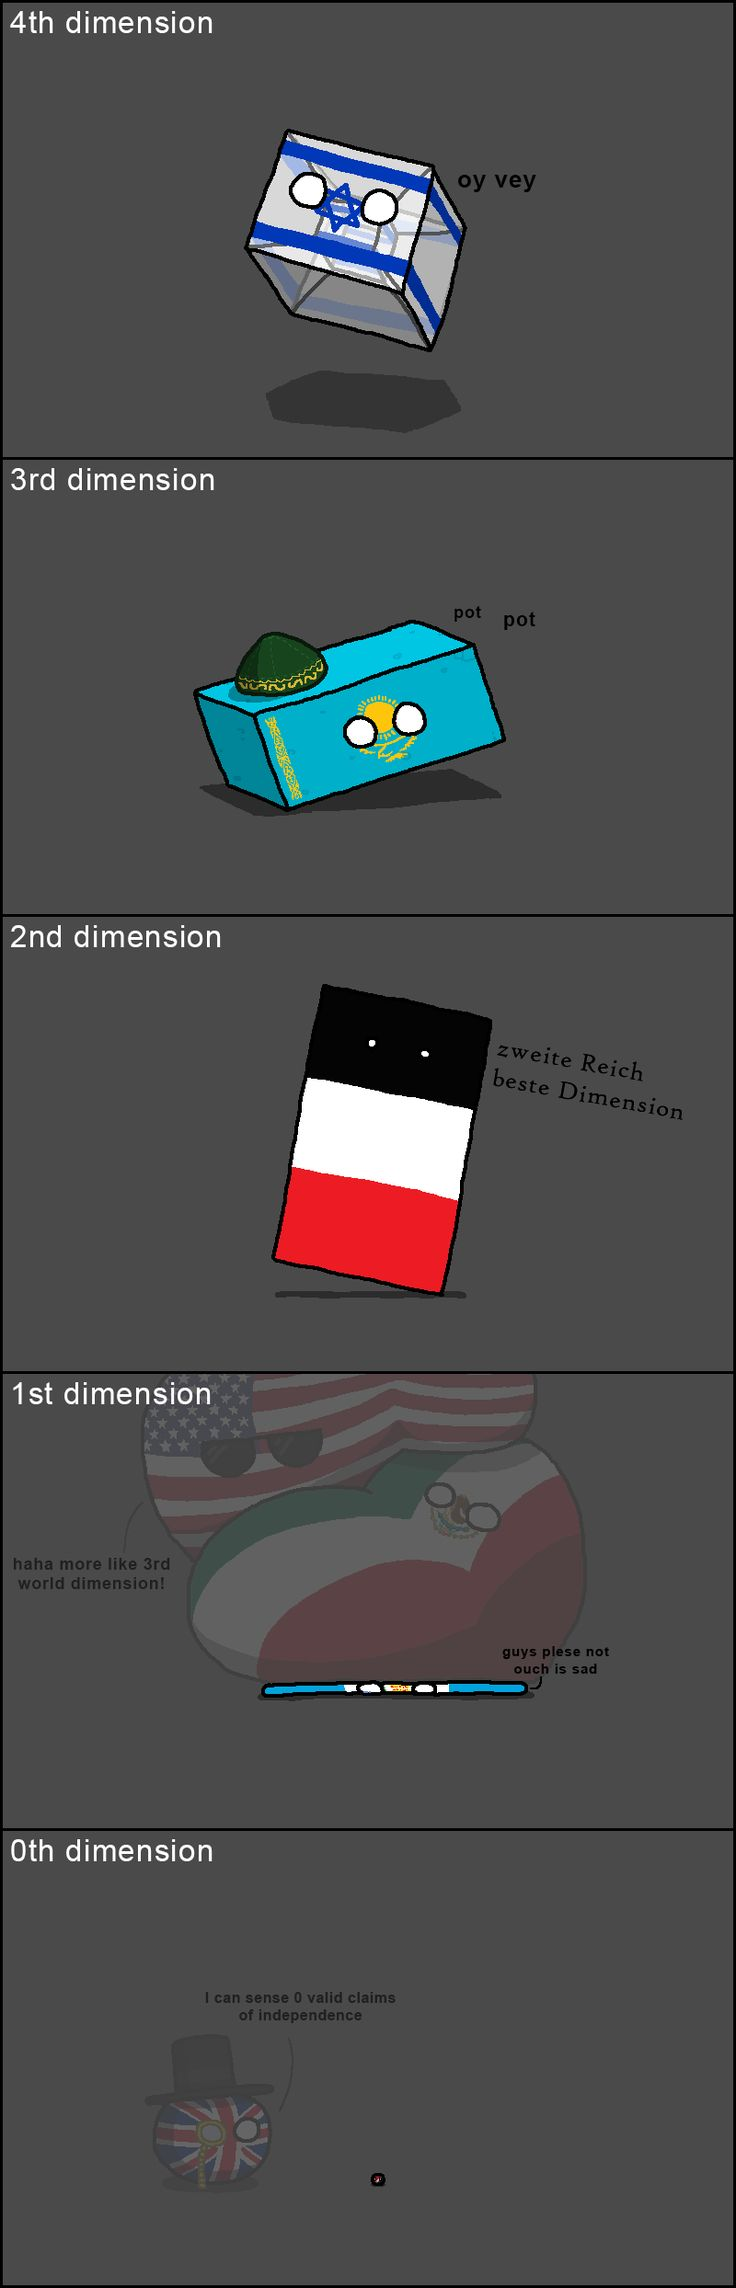 Dimensions ( Israel, Kazakhstan, Reichtangle, Guatemala, Sealand ) by zimonitrome #polandball #countryball #flagball